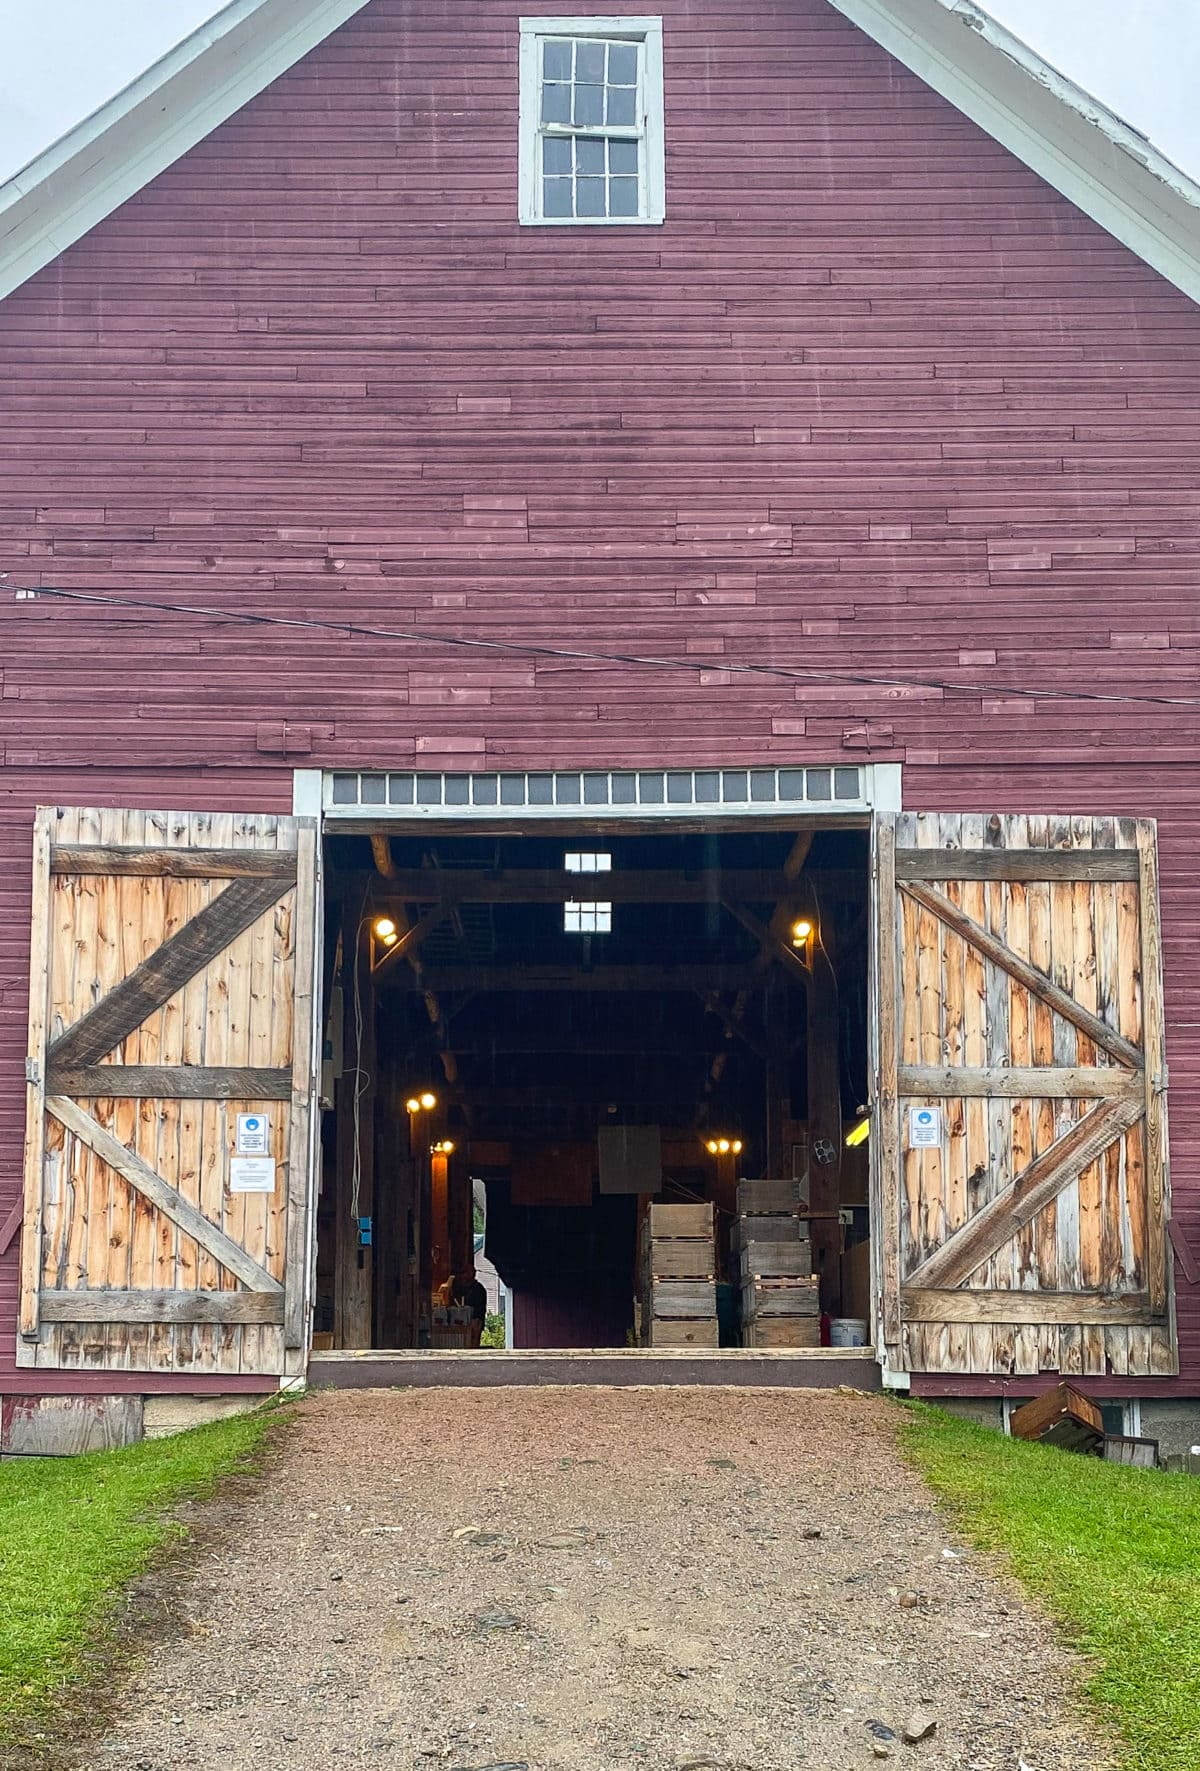 Open barn doors and red barn